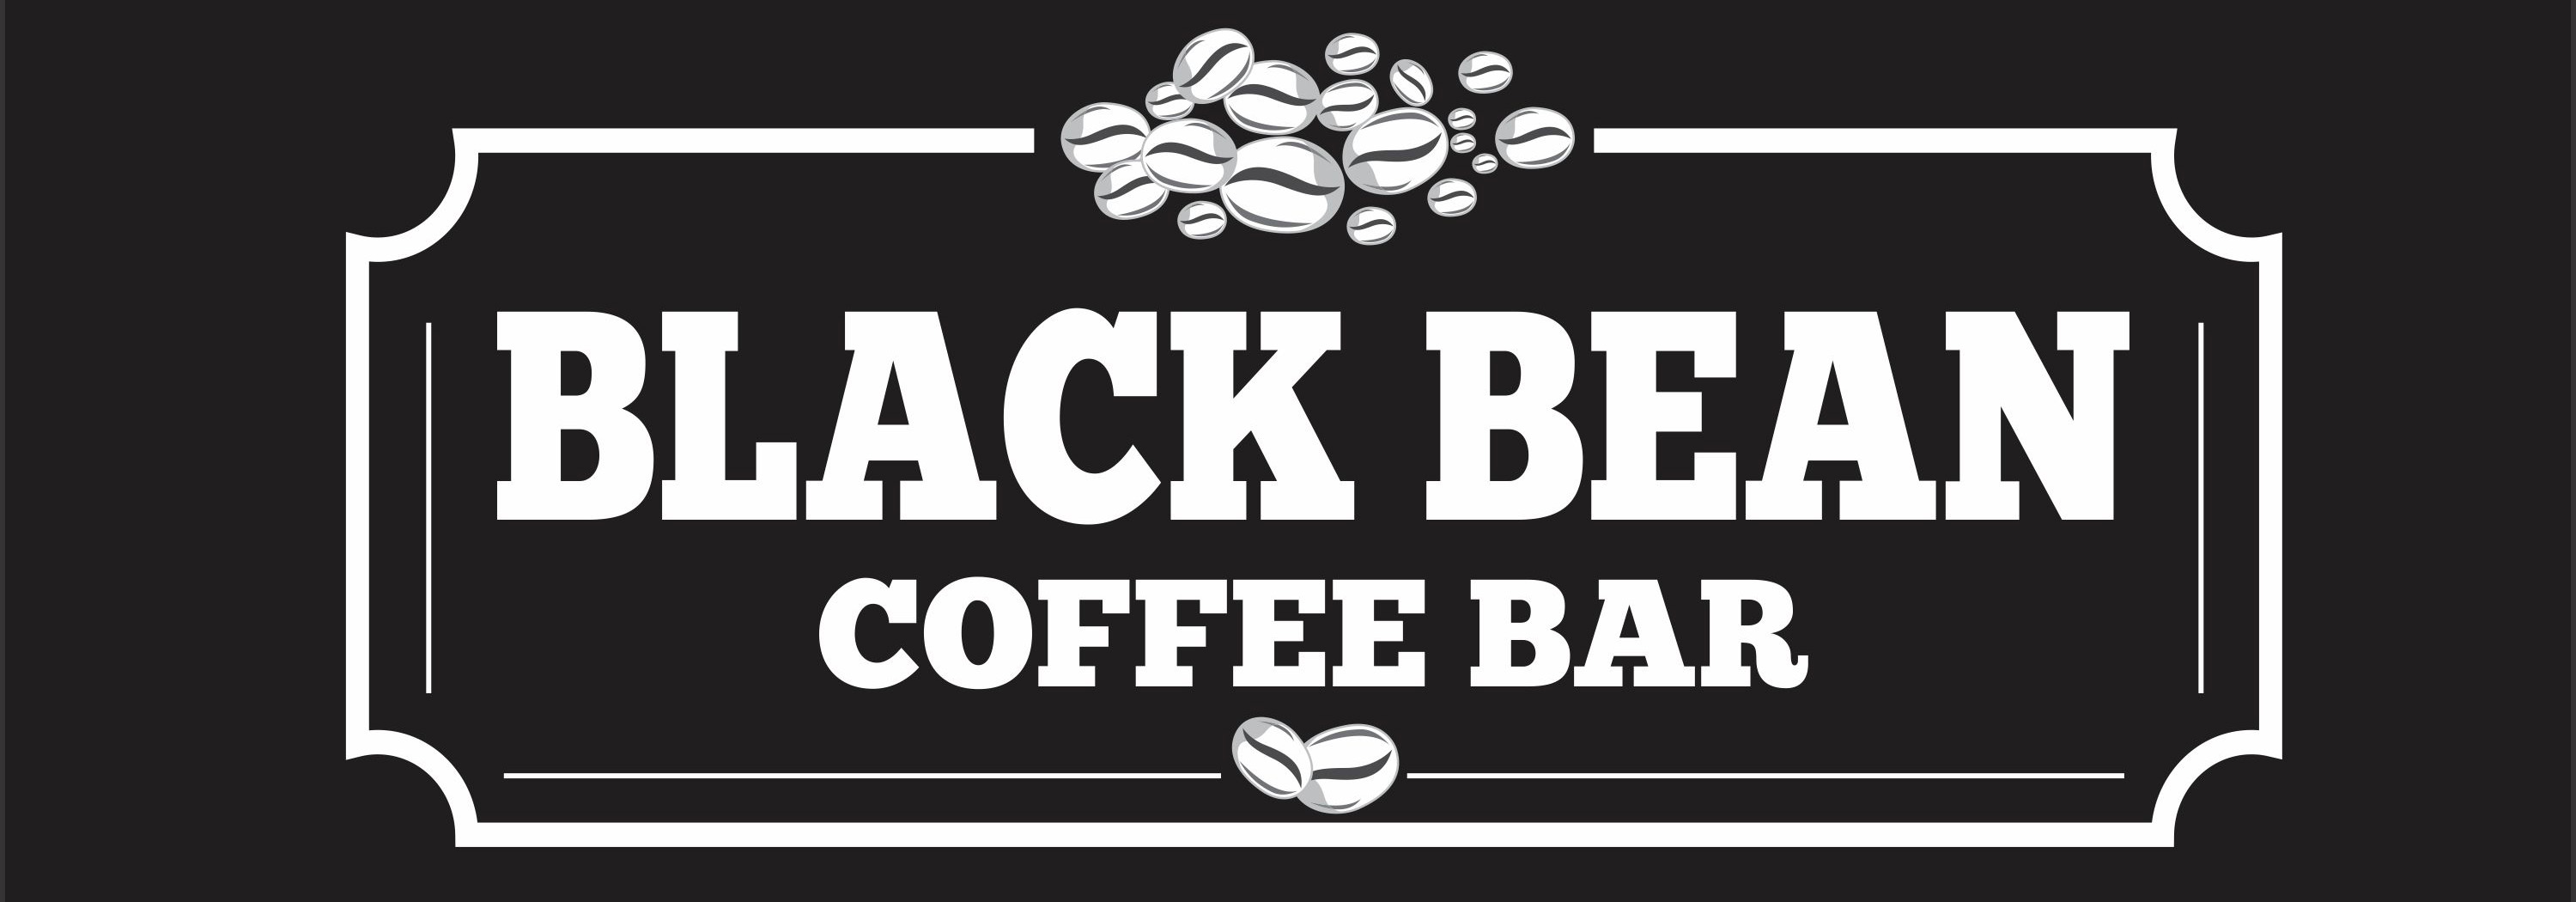 Black Bean Coffee Bar